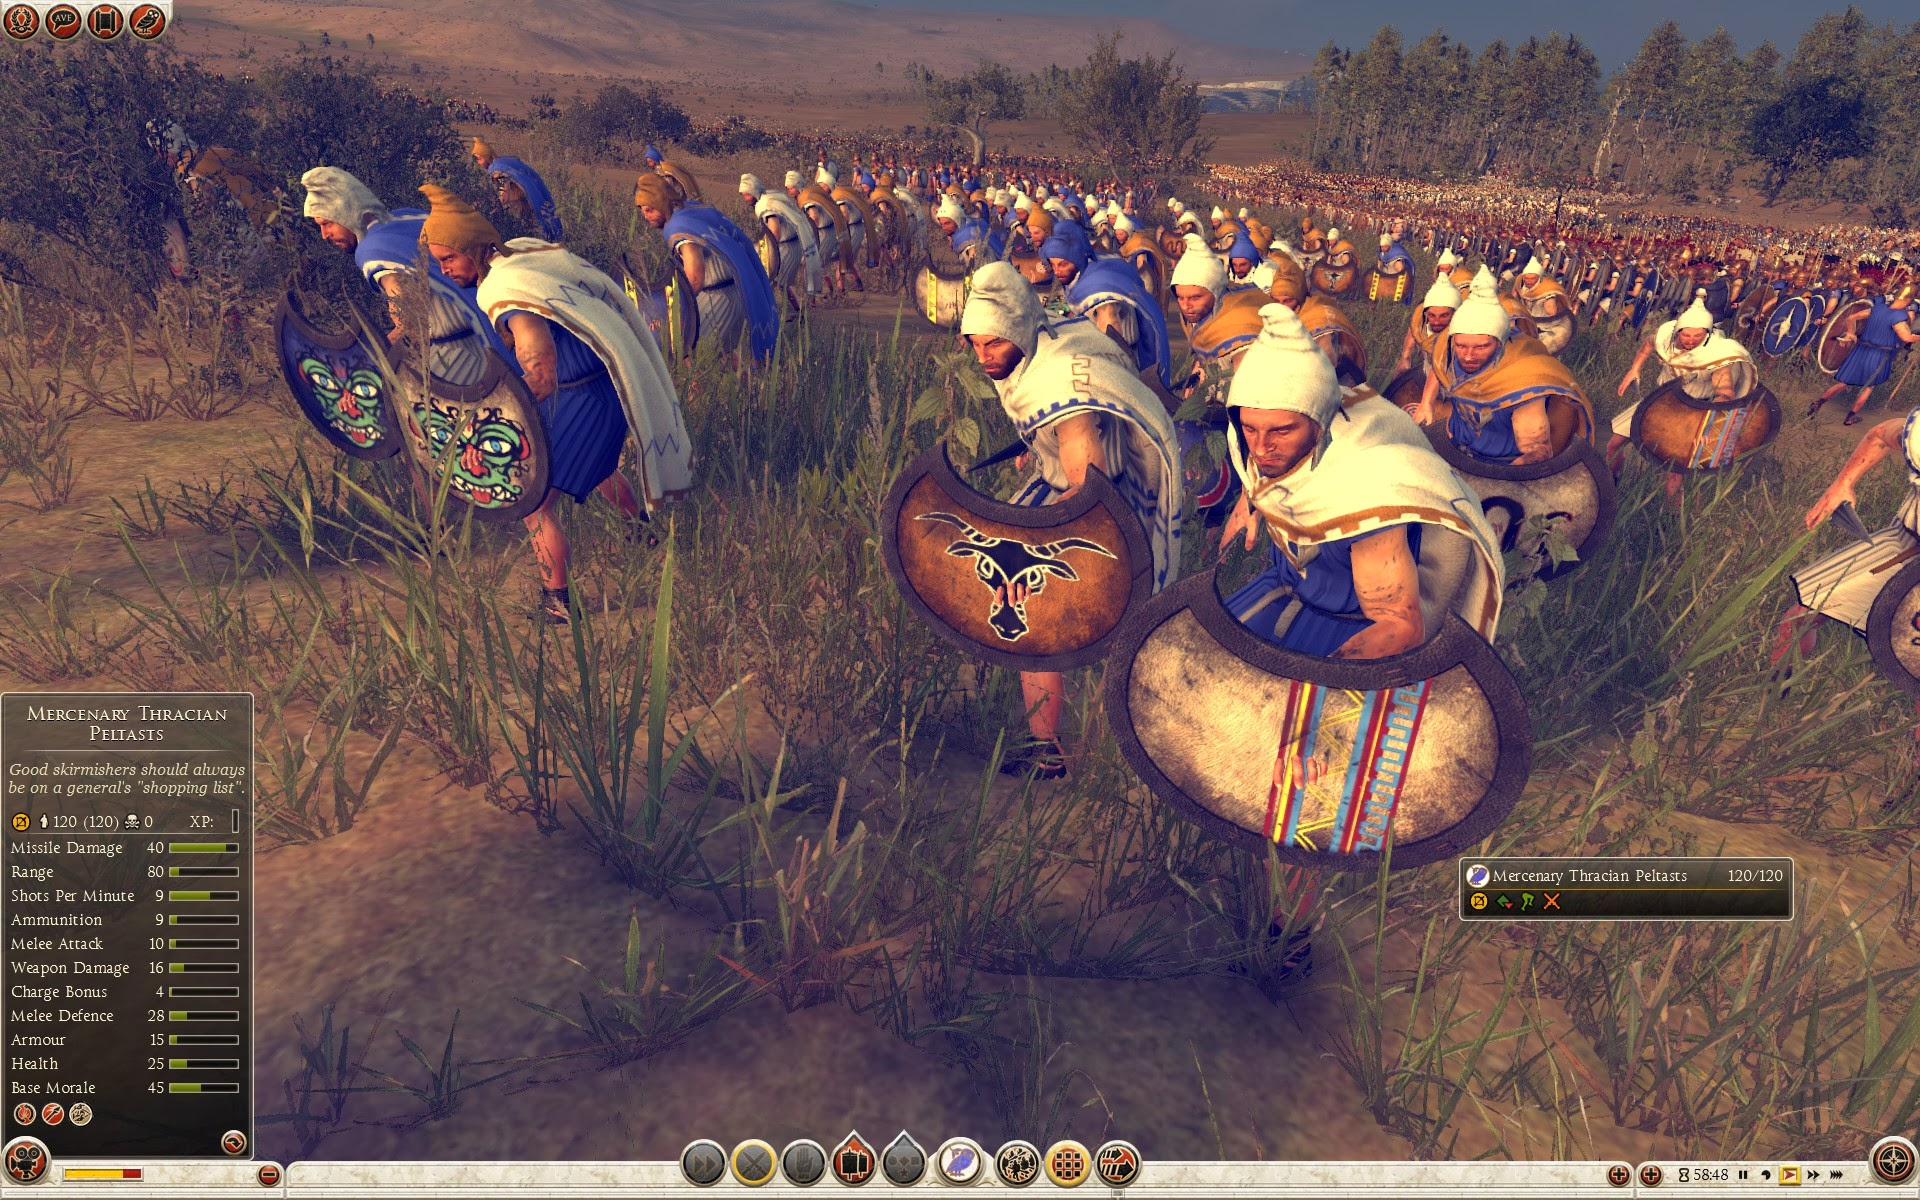 Mercenary Thracian Peltasts